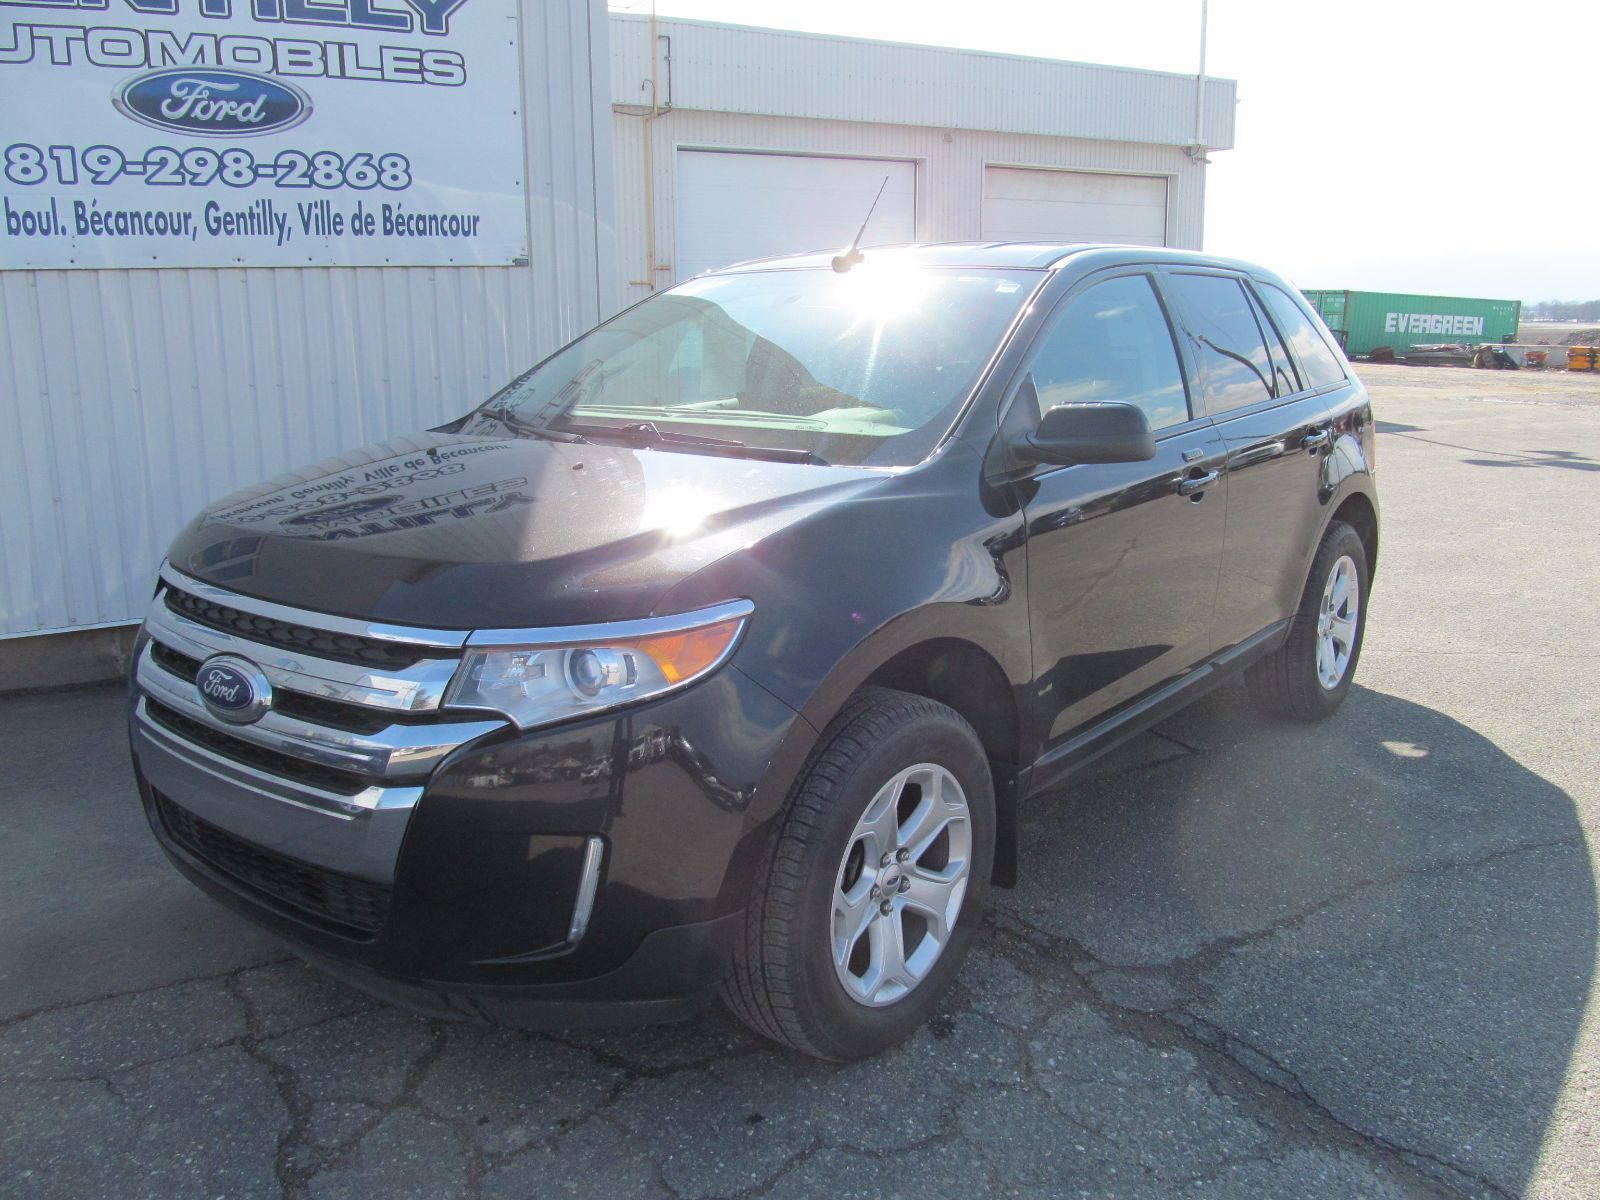 2014 ford edge sel d 39 occasion b cancour secteur gentilly inventaire d 39 occasion gentilly. Black Bedroom Furniture Sets. Home Design Ideas